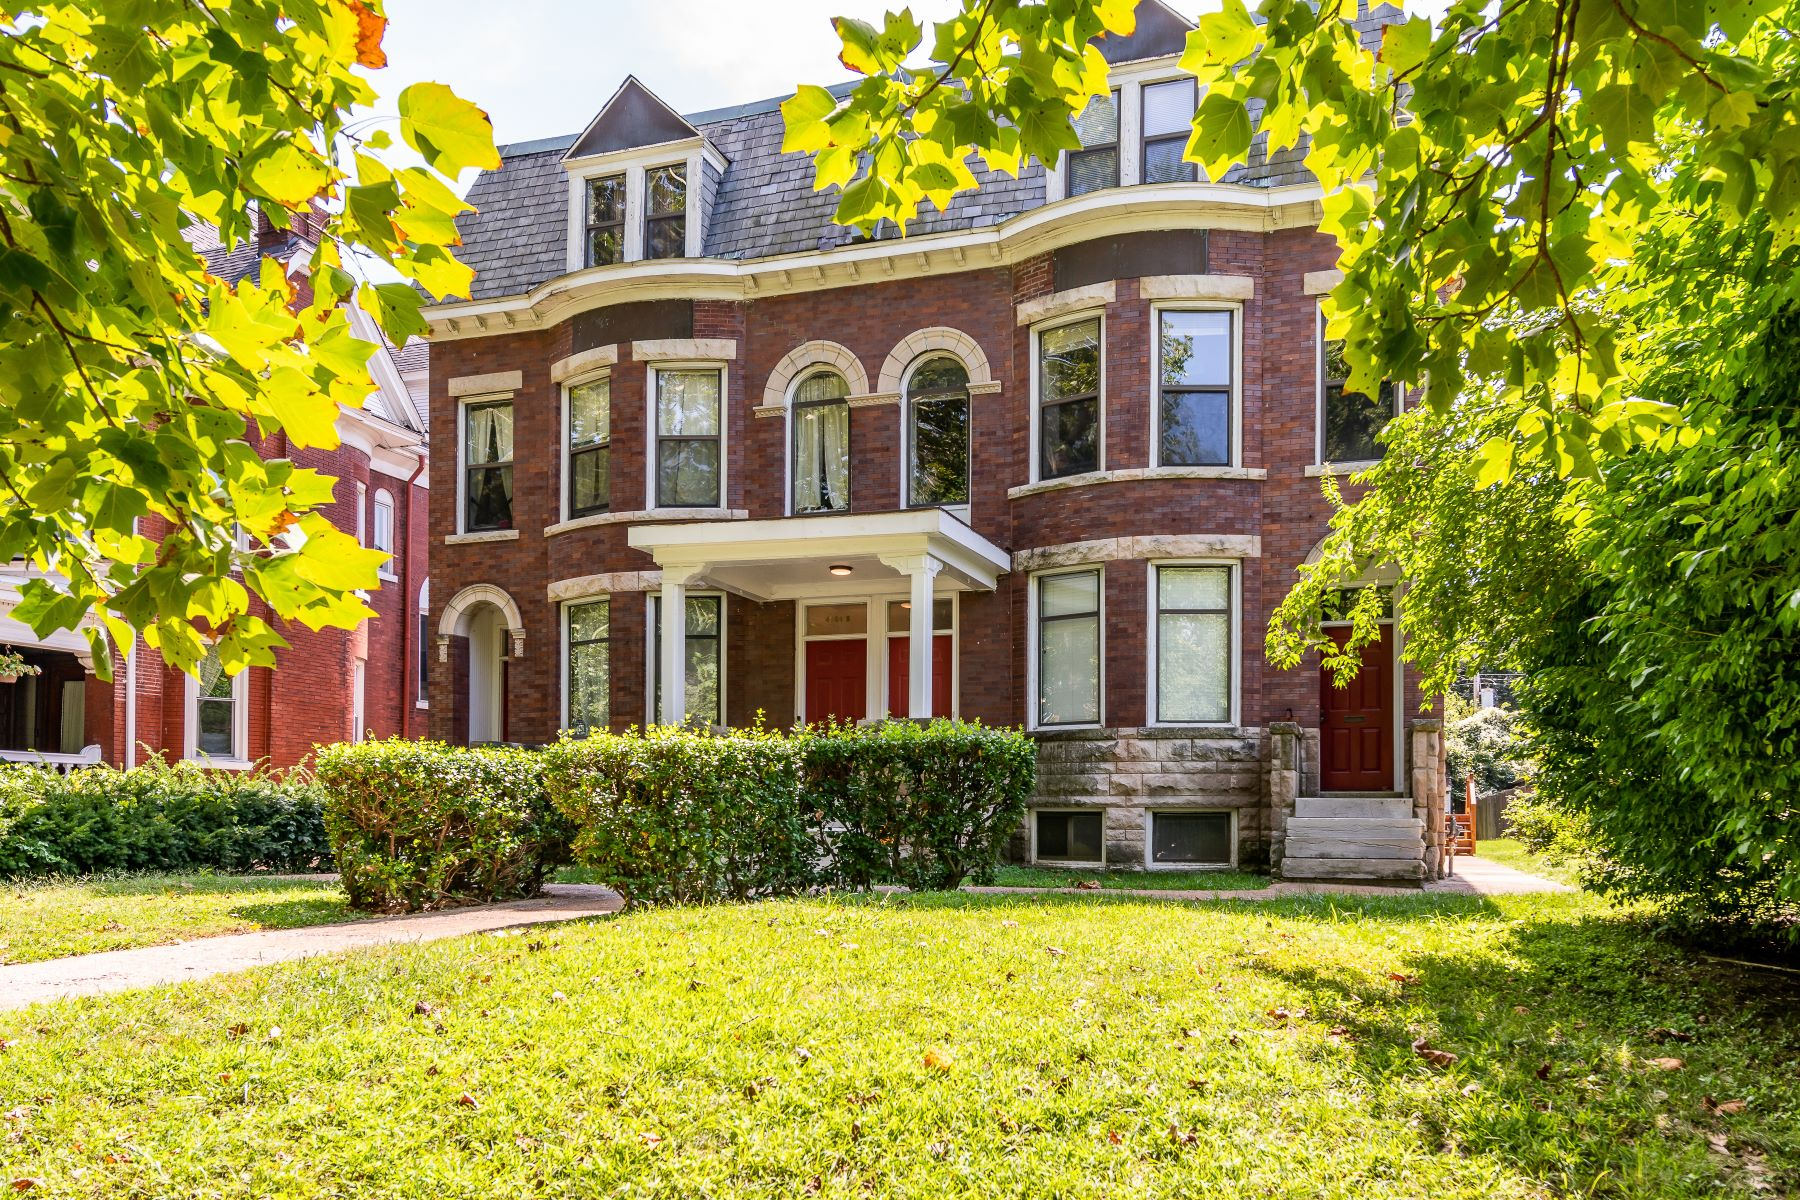 Condominiums for Sale at Renovated Townhouse in the Heart of the Central West End 4366 West Pine Boulevard #A St. Louis, Missouri 63108 United States